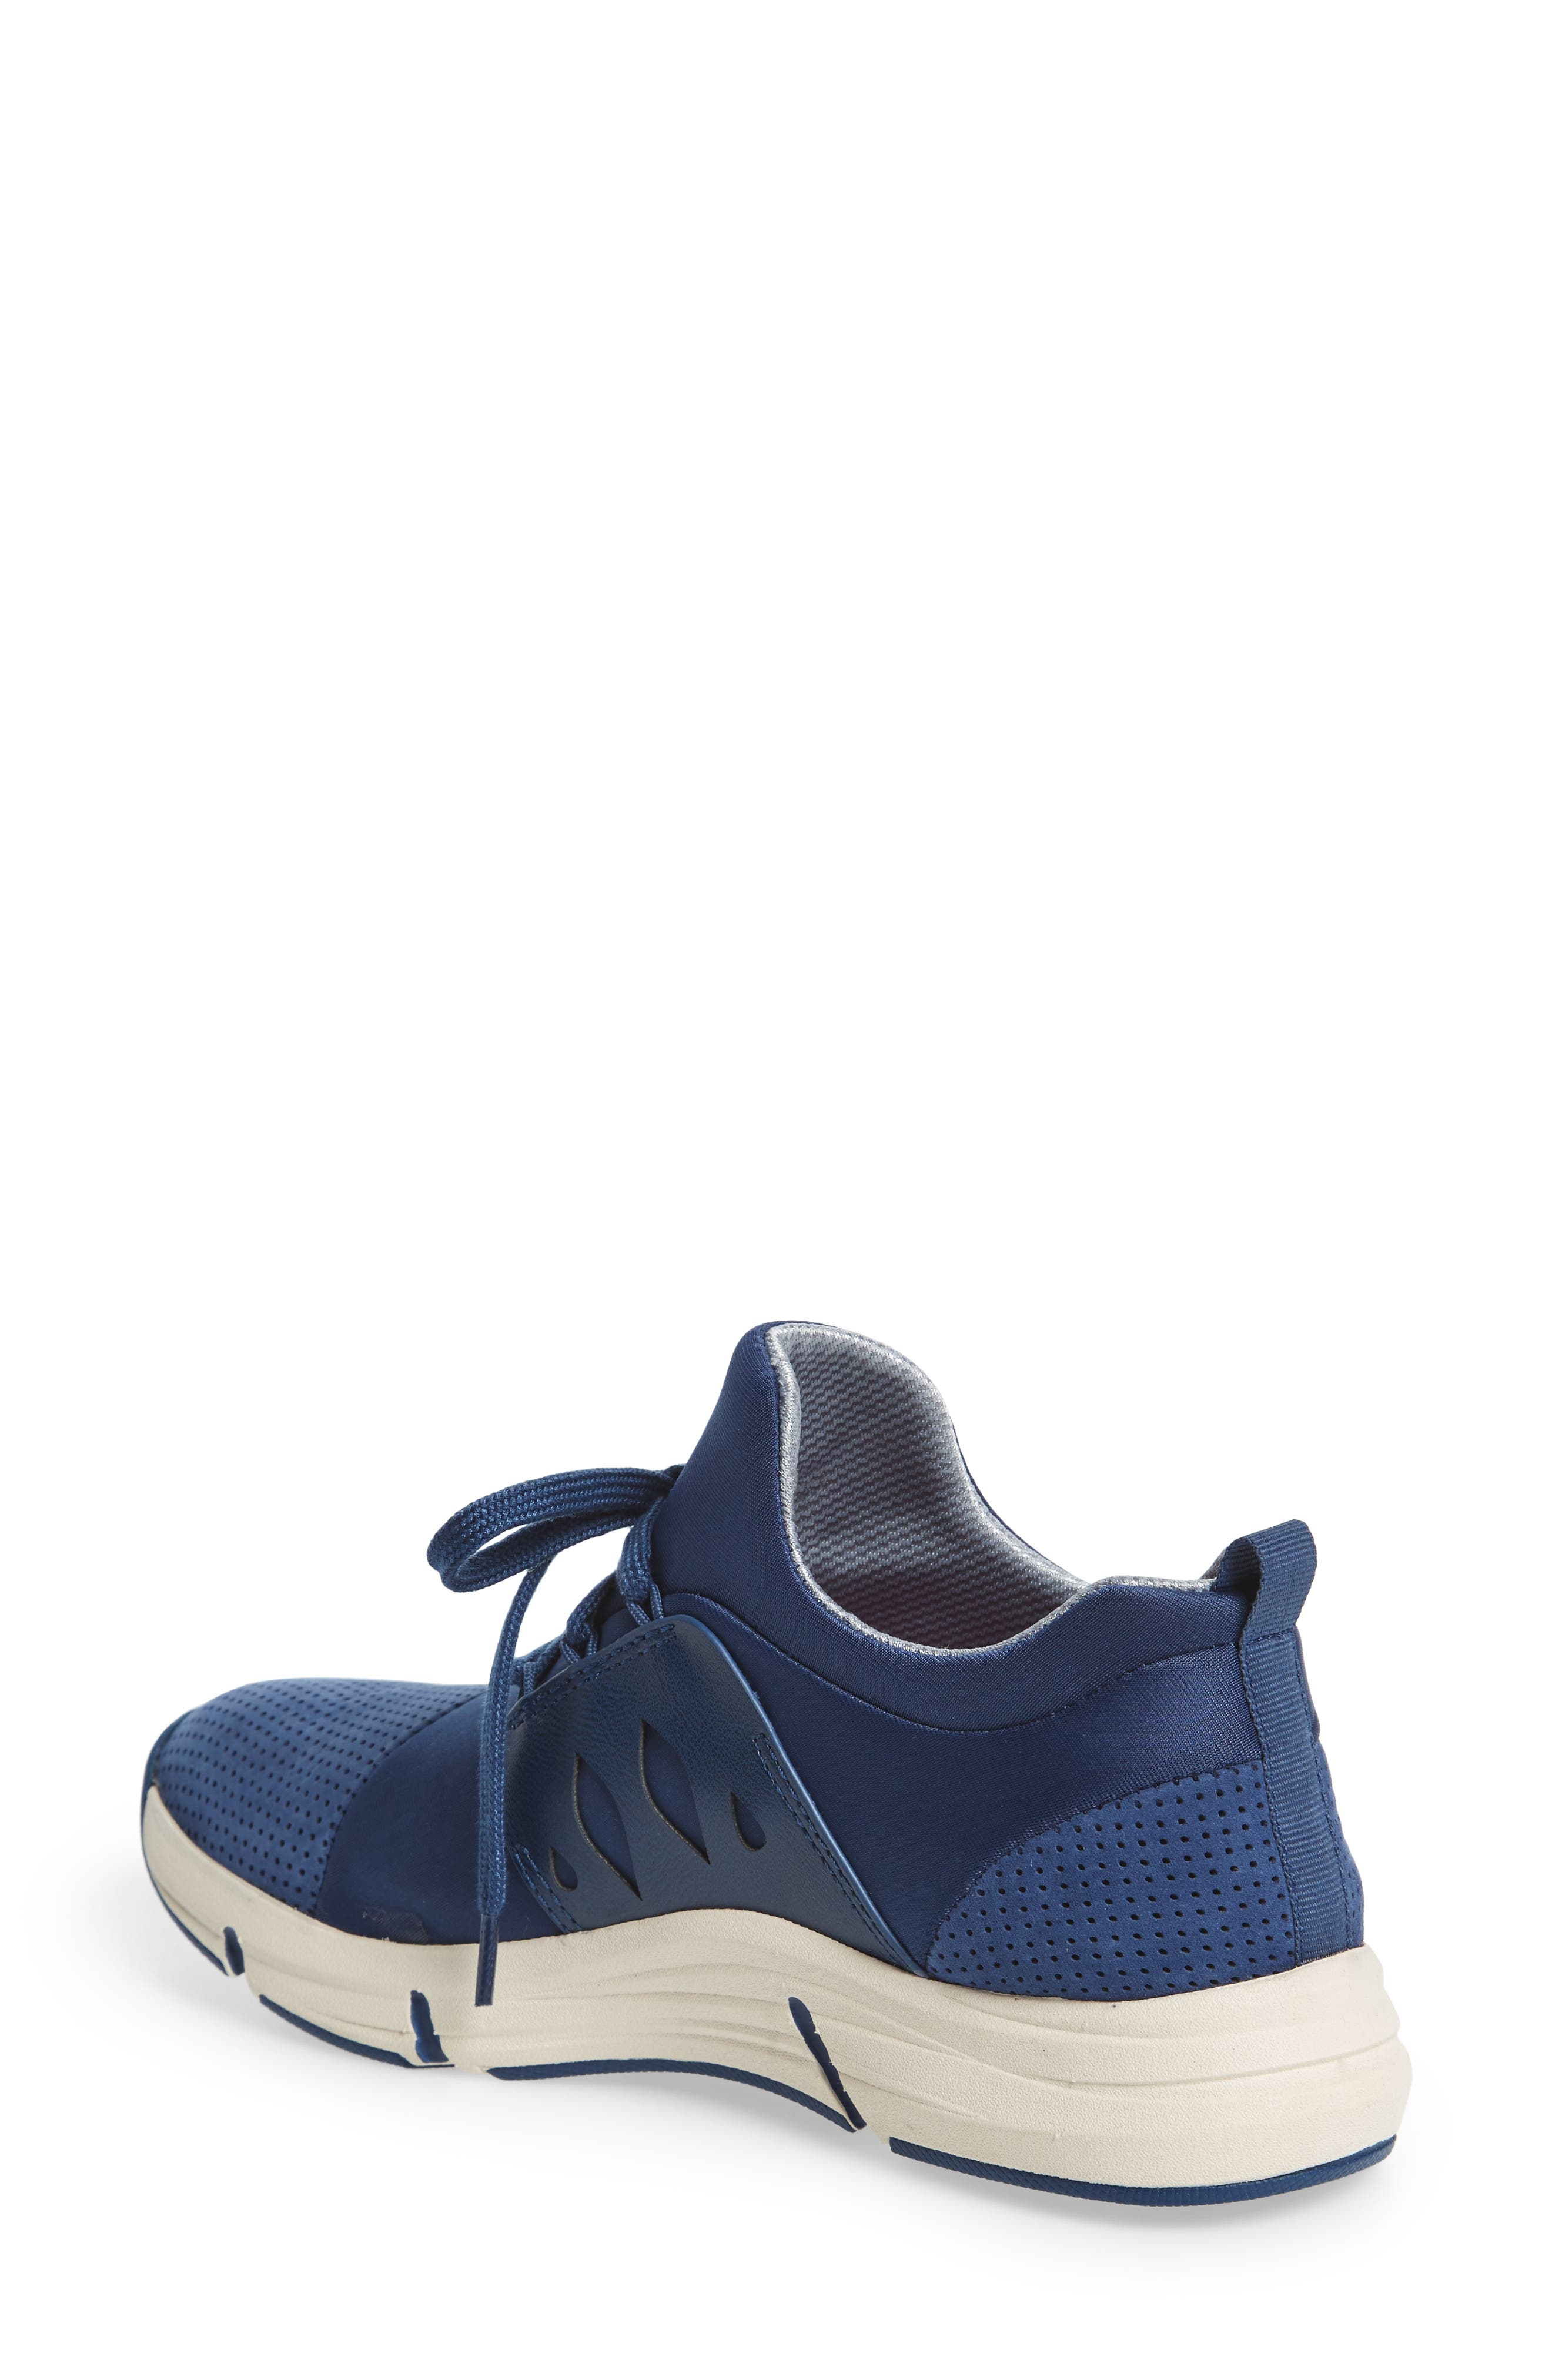 Ordell Sneaker,                             Alternate thumbnail 6, color,